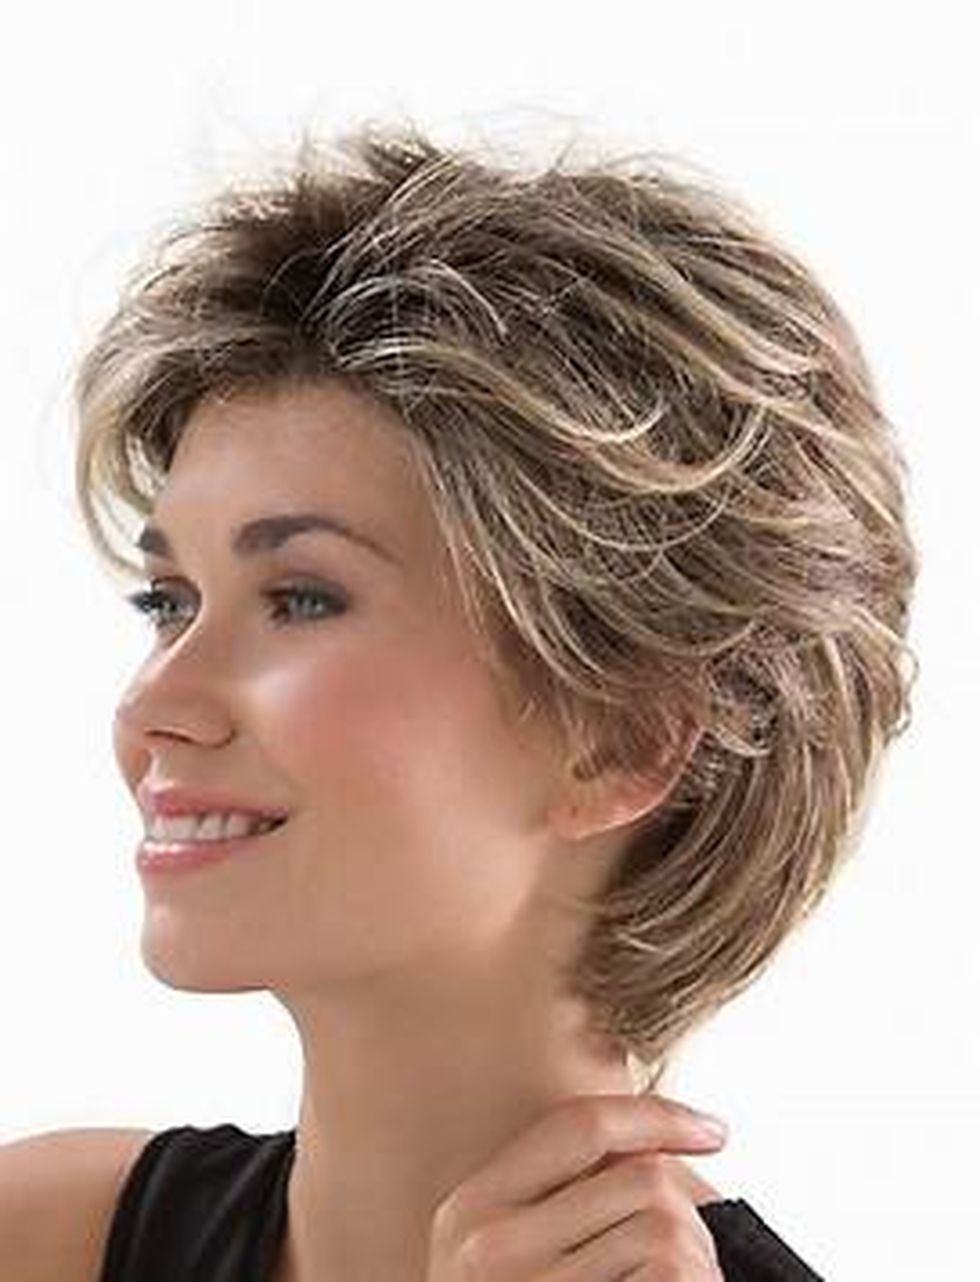 Fabulous over 50 short hairstyle ideas 6